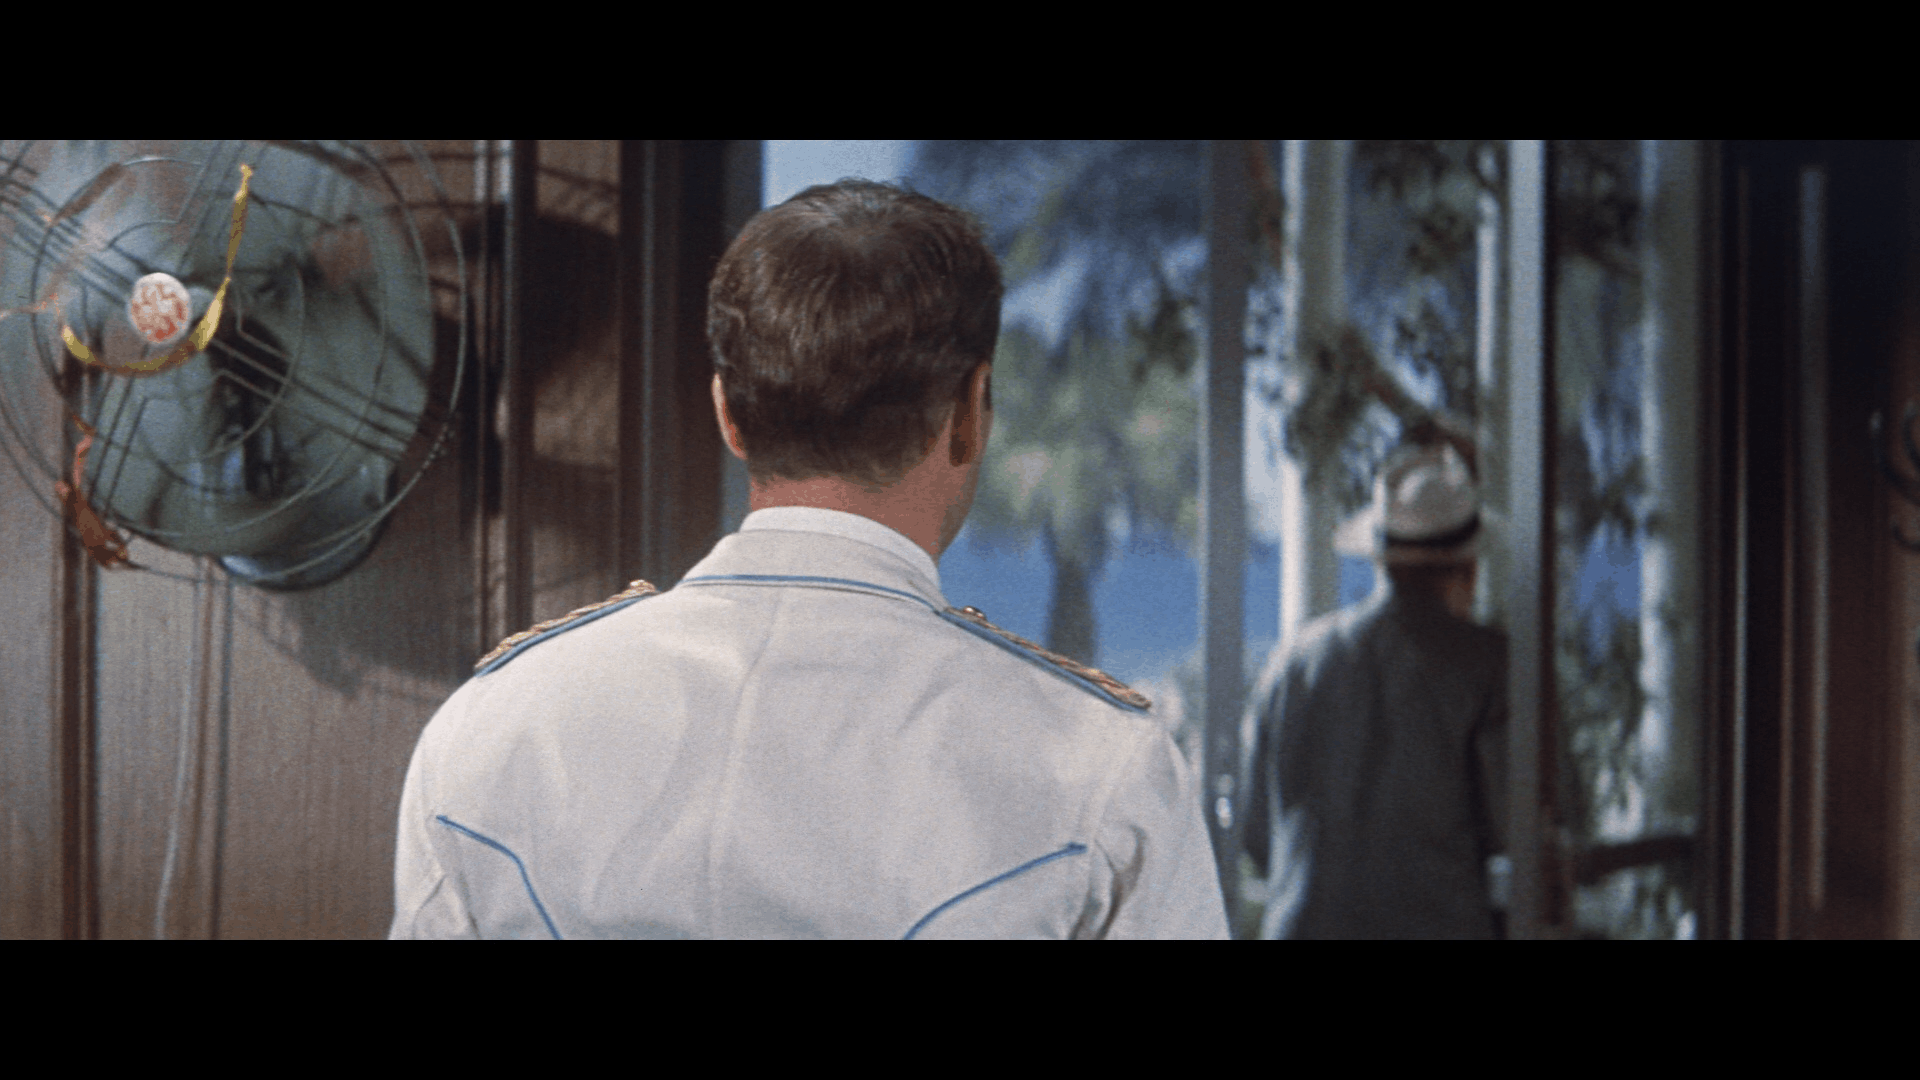 Sweet Bird of Youth is Peak Tennessee Williams [Warner Archive Blu-ray review] 23